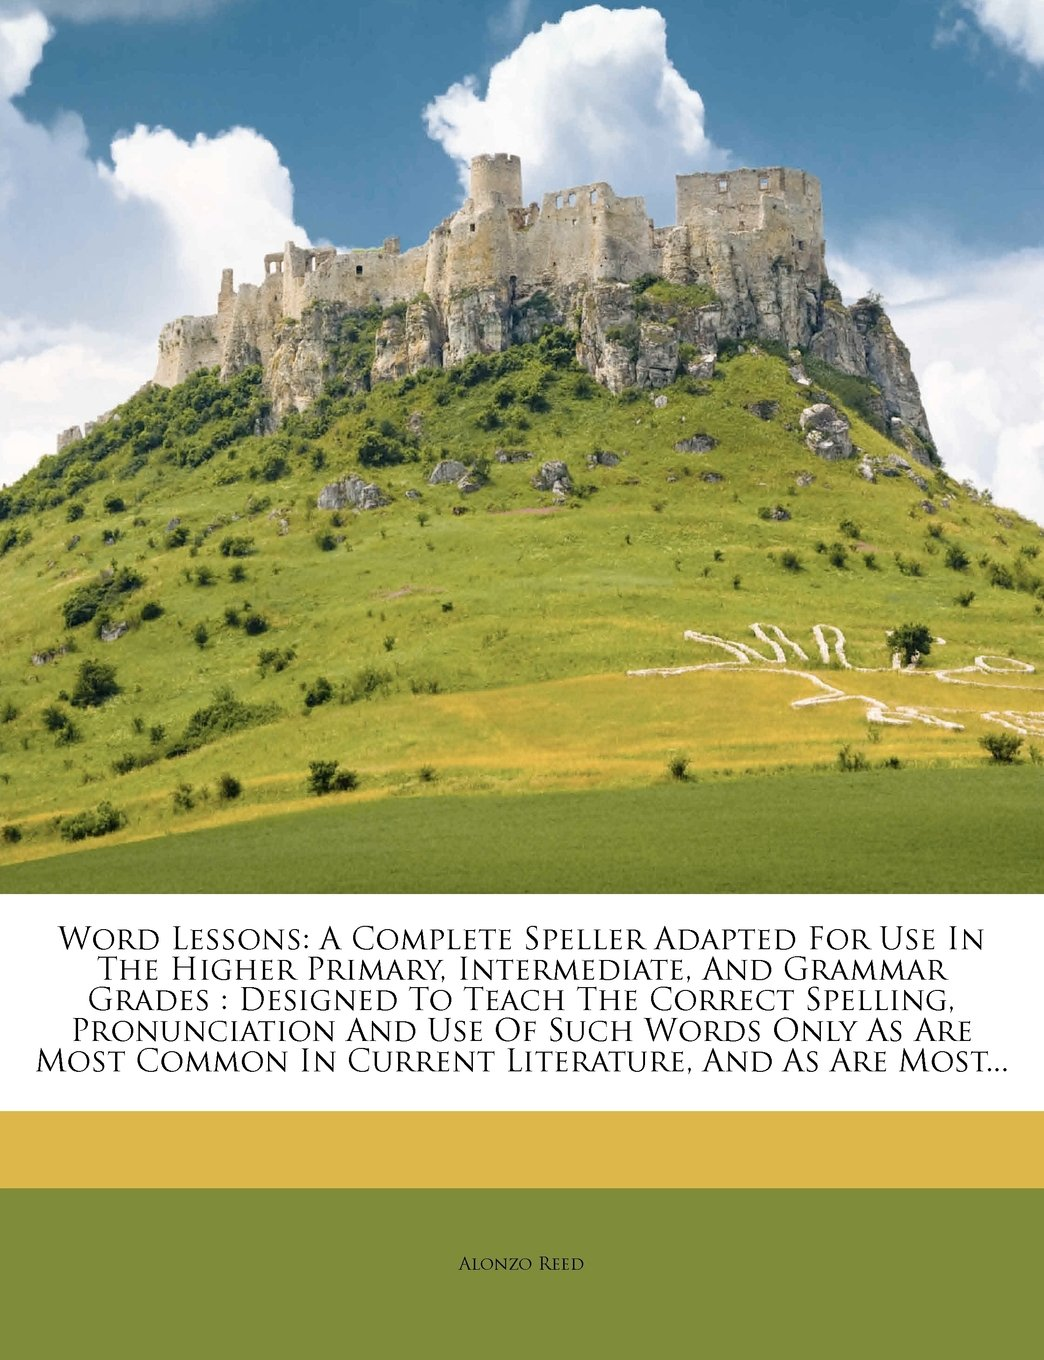 Read Online Word Lessons: A Complete Speller Adapted For Use In The Higher Primary, Intermediate, And Grammar Grades : Designed To Teach The Correct Spelling, ... In Current Literature, And As Are Most... PDF